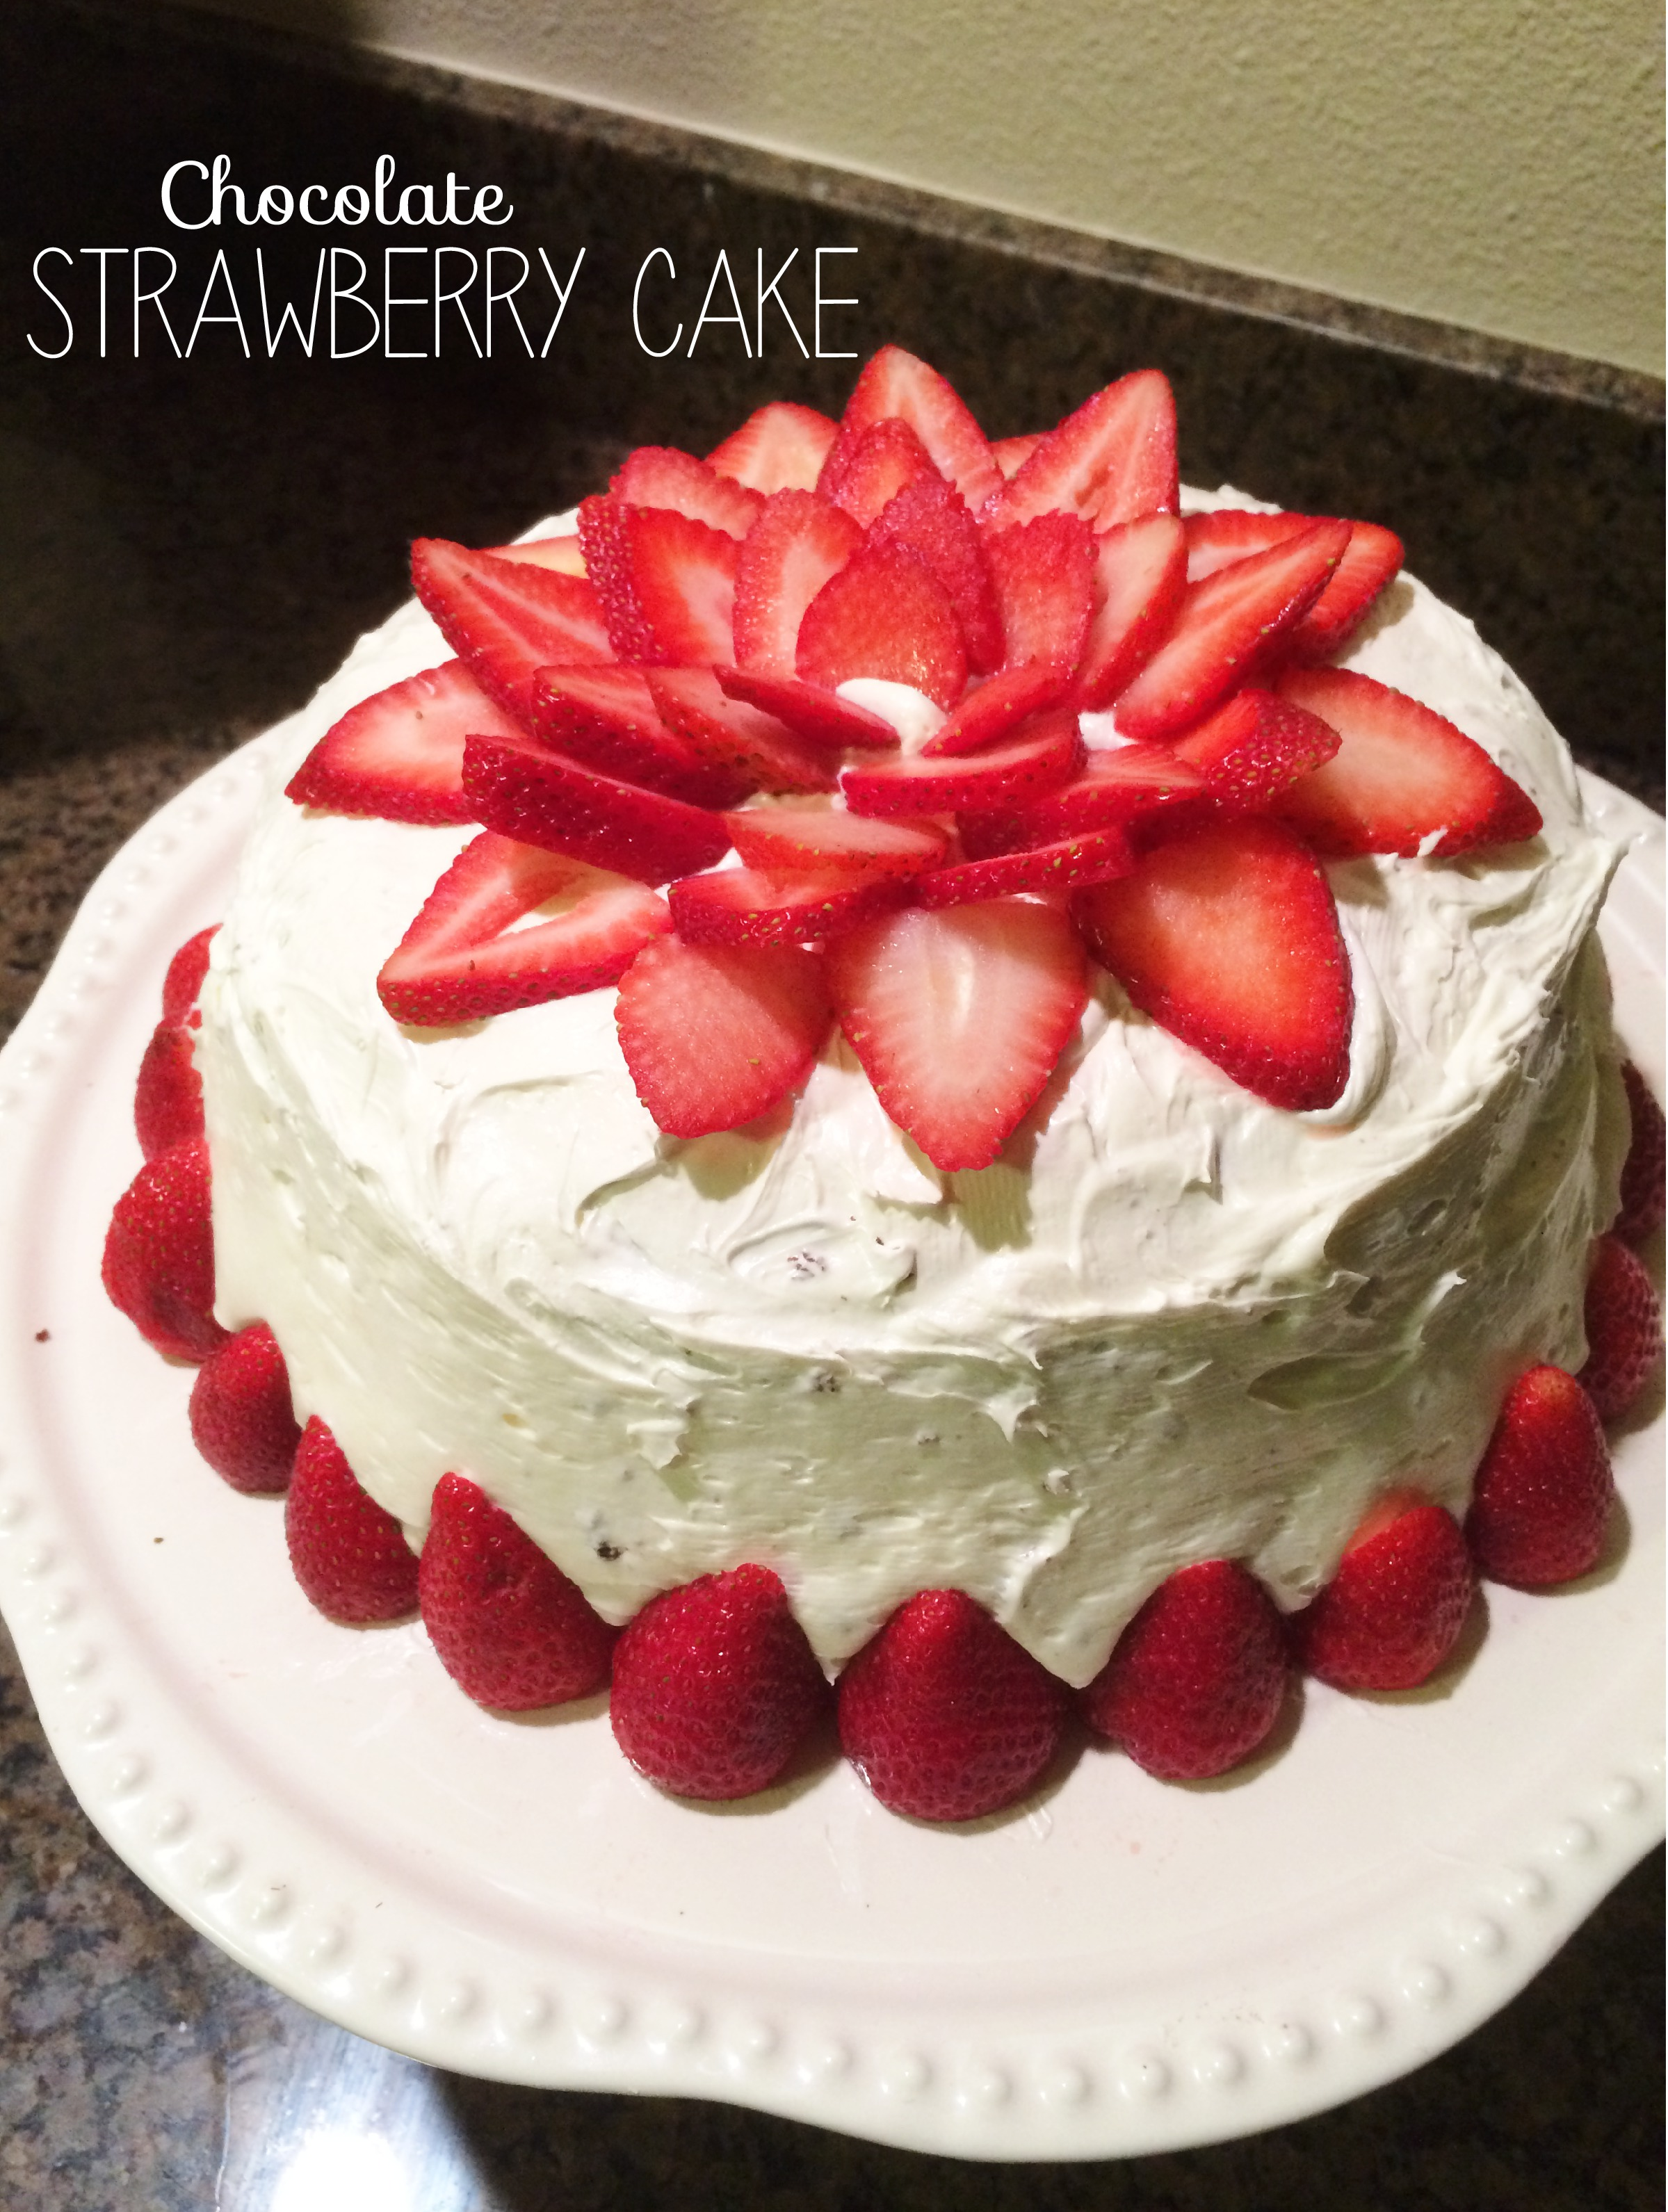 Chocolate Strawberry Cake | The Sara Project